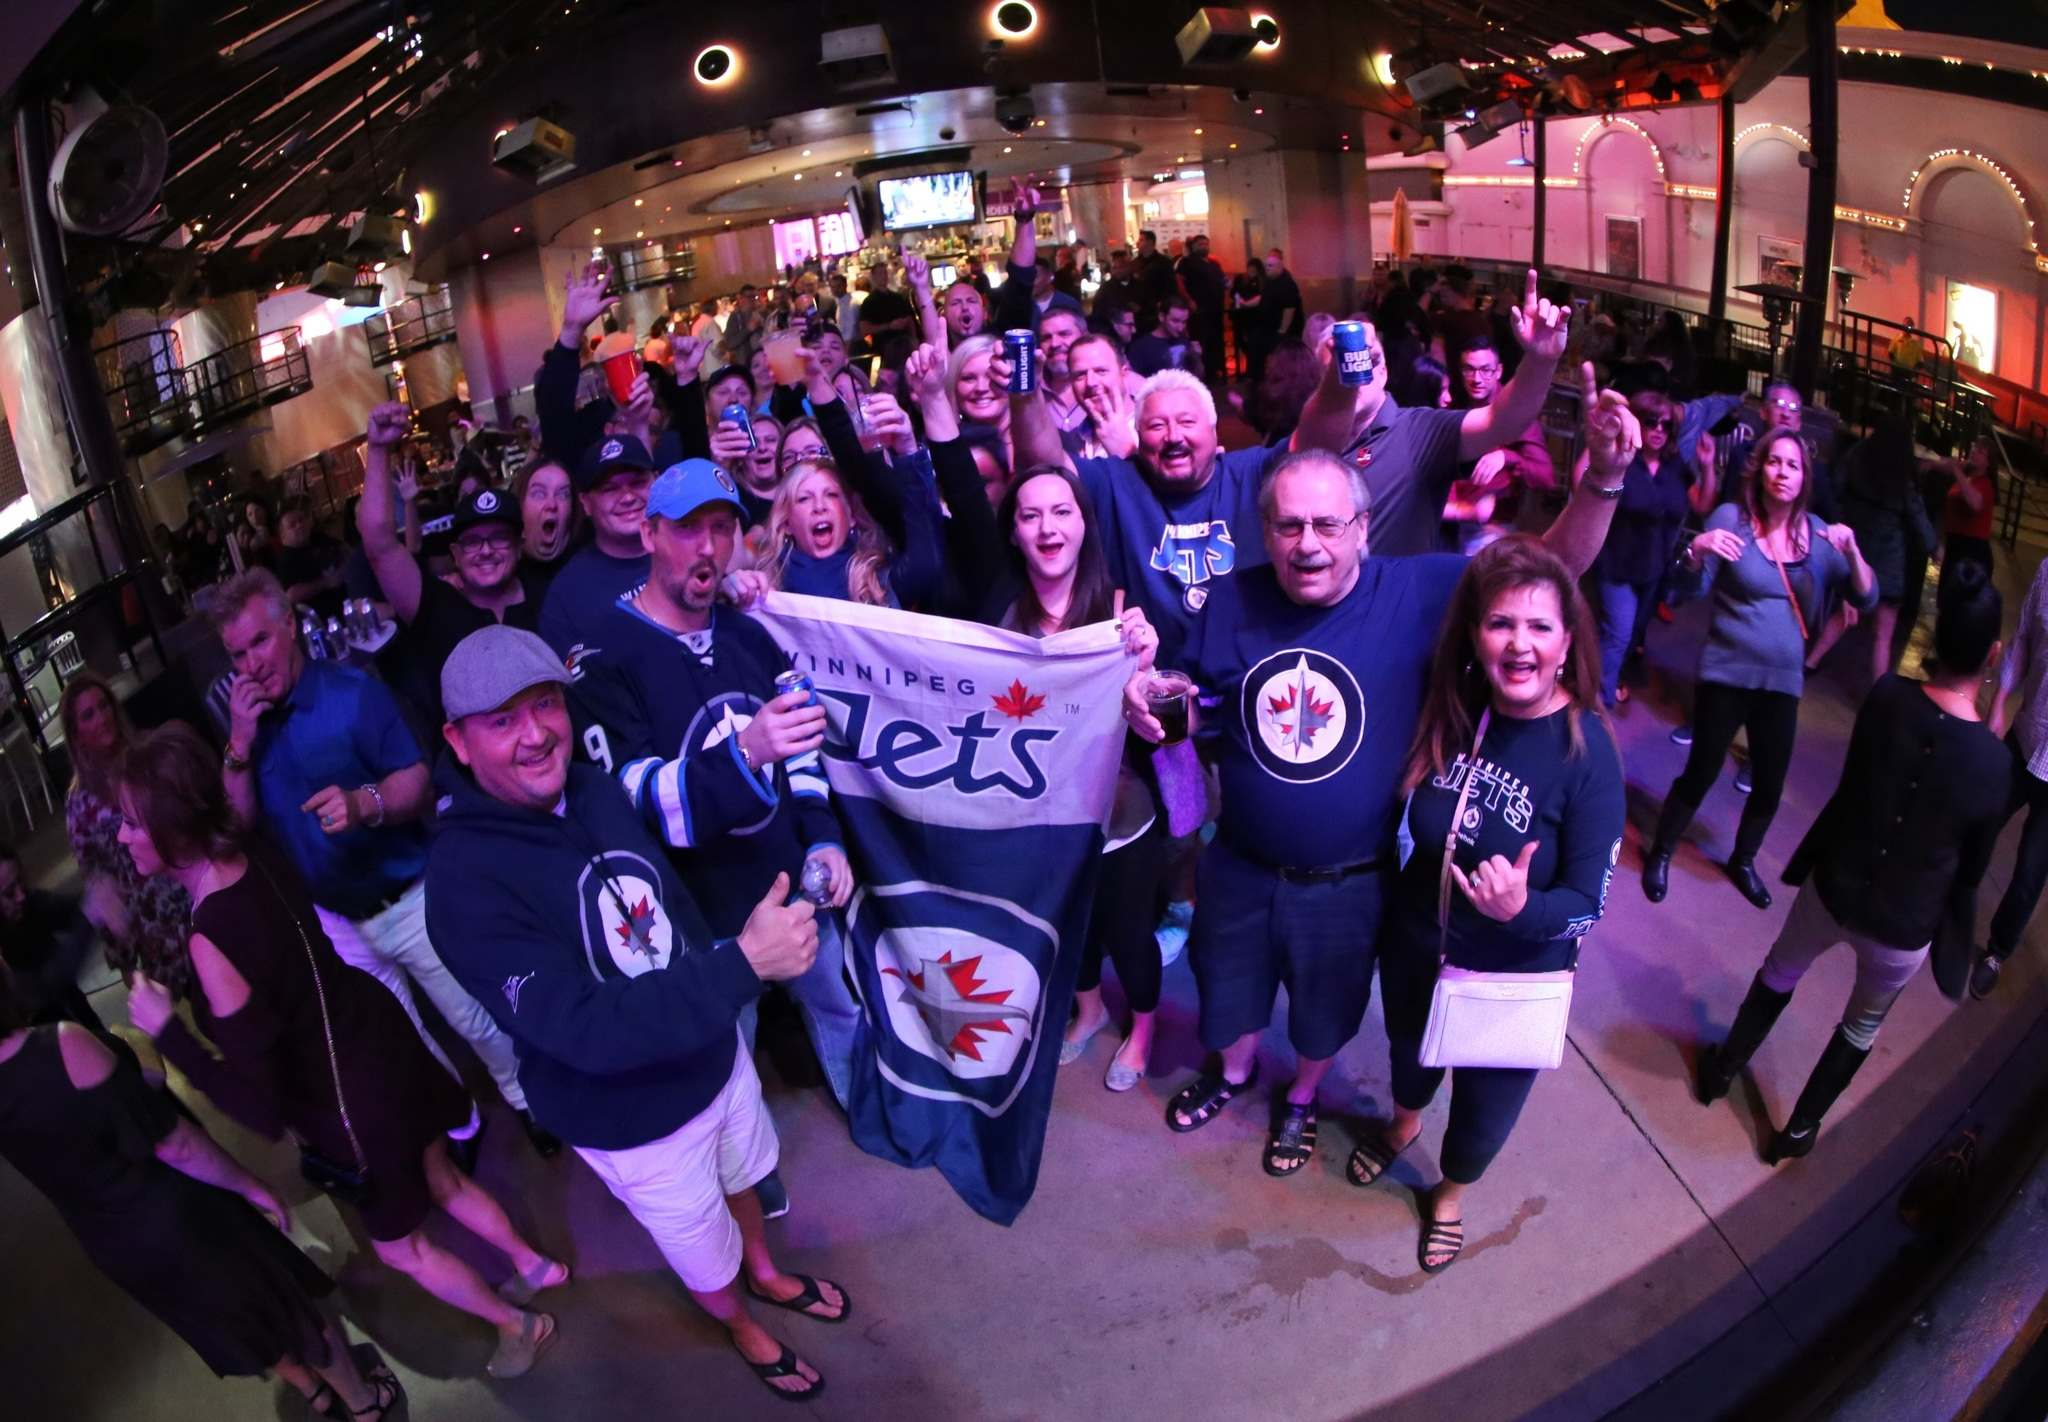 TREVOR HAGAN / WINNIPEG FRESS</p><p>A group of Jets fans gathered at Carnival Court on the Las Vegas strip, Thursday, November 9, 2017.</p>